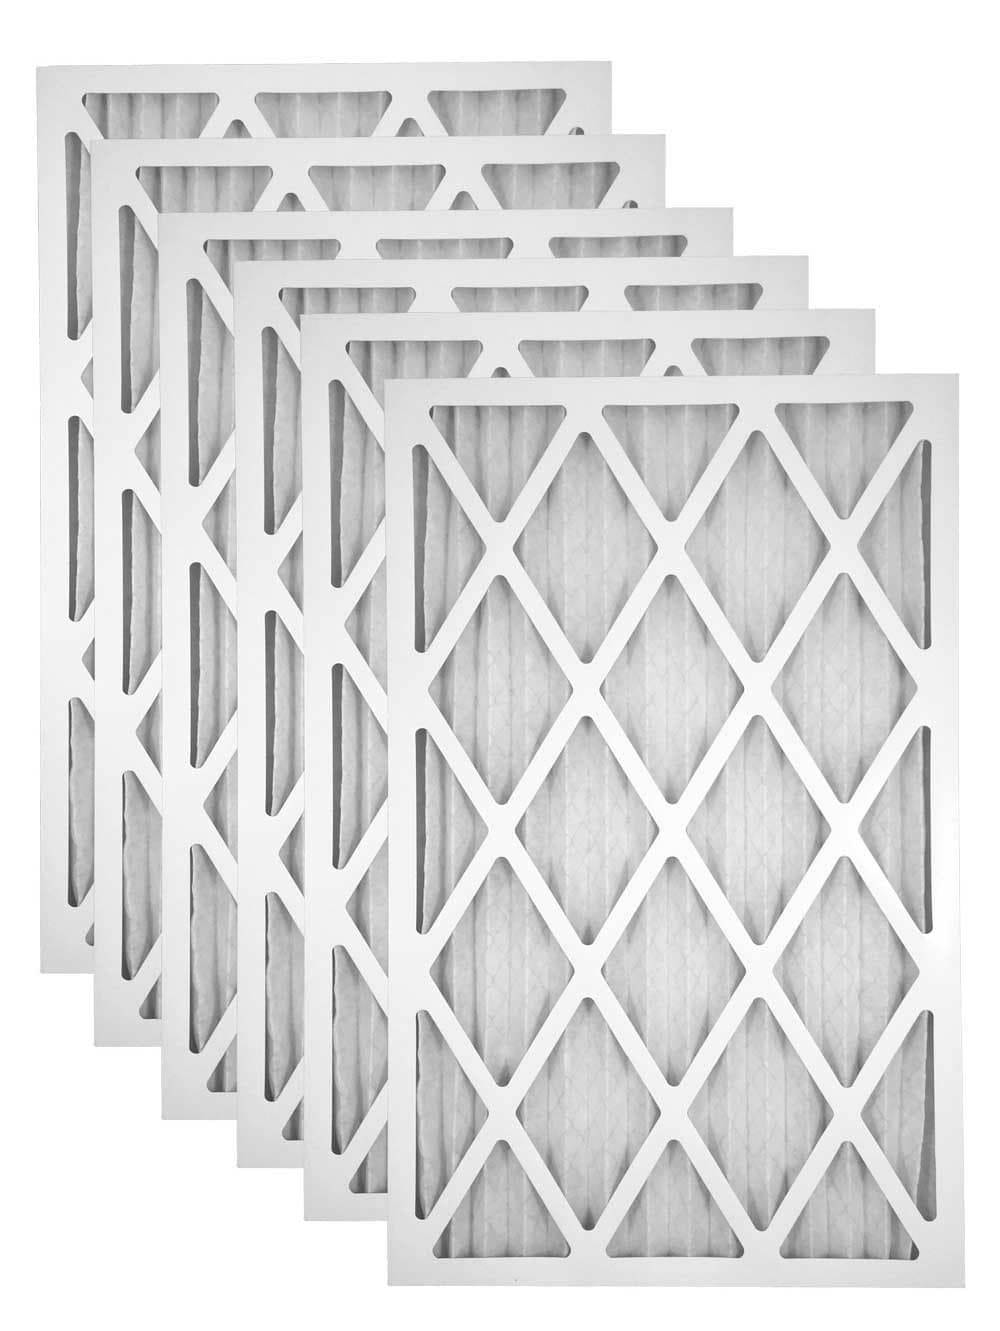 14x18x1 Merv 13 AC Furnace Filter - Case of 6